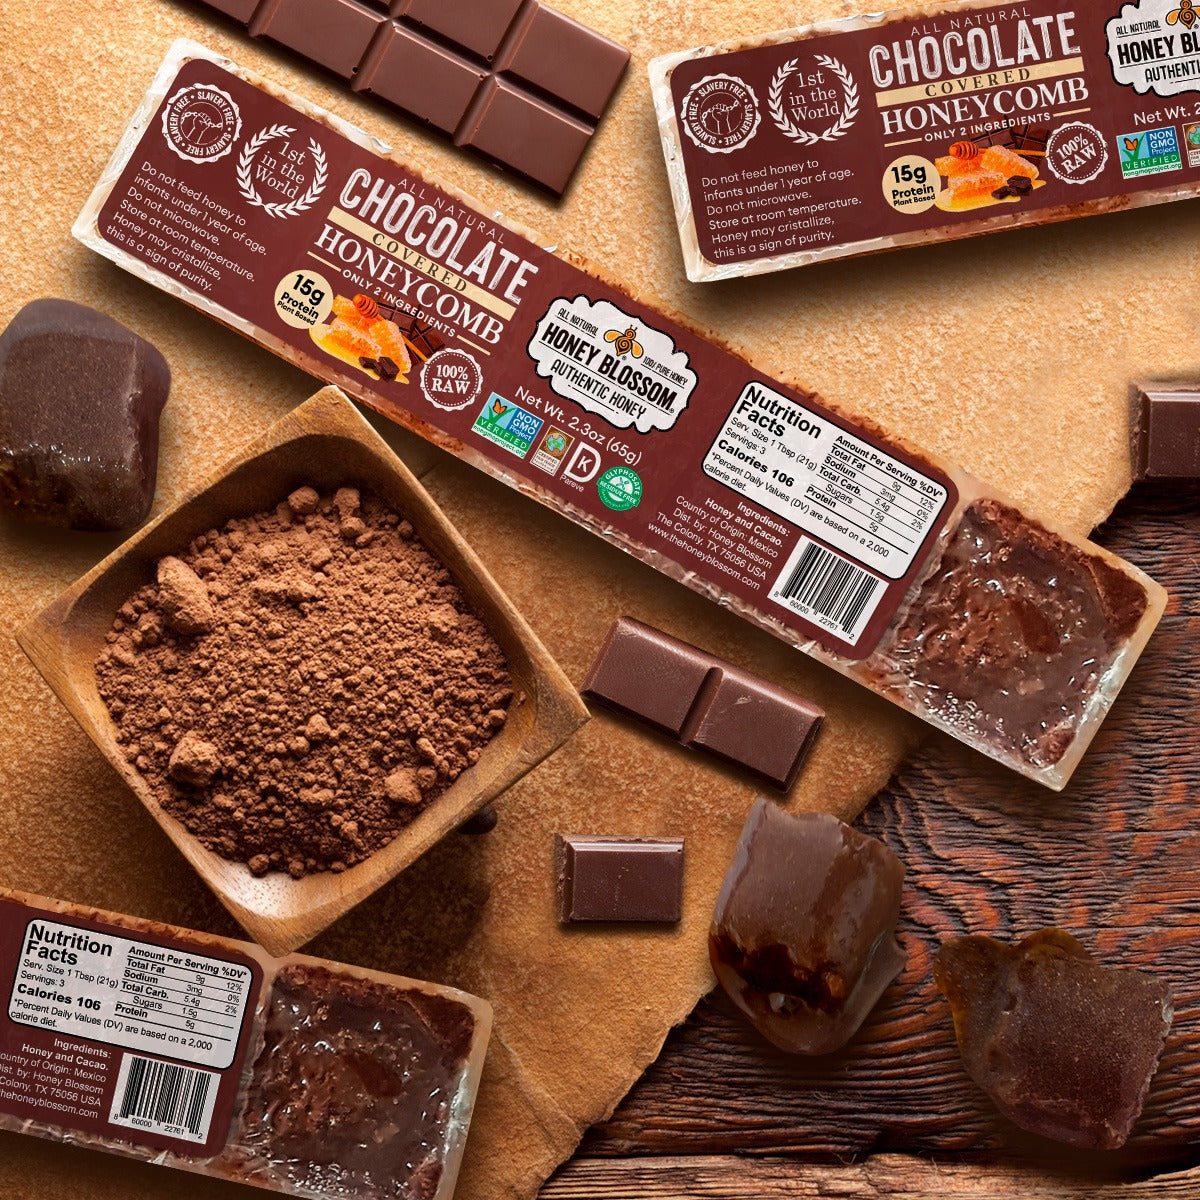 Image of 2 Chocolate Covered 100% RAW Honeycomb Snack Size, 5 Servings on a wooden table, with a jar with cacao powder, chocolate bars on their sides along with cubes of honeycomb with chocolate